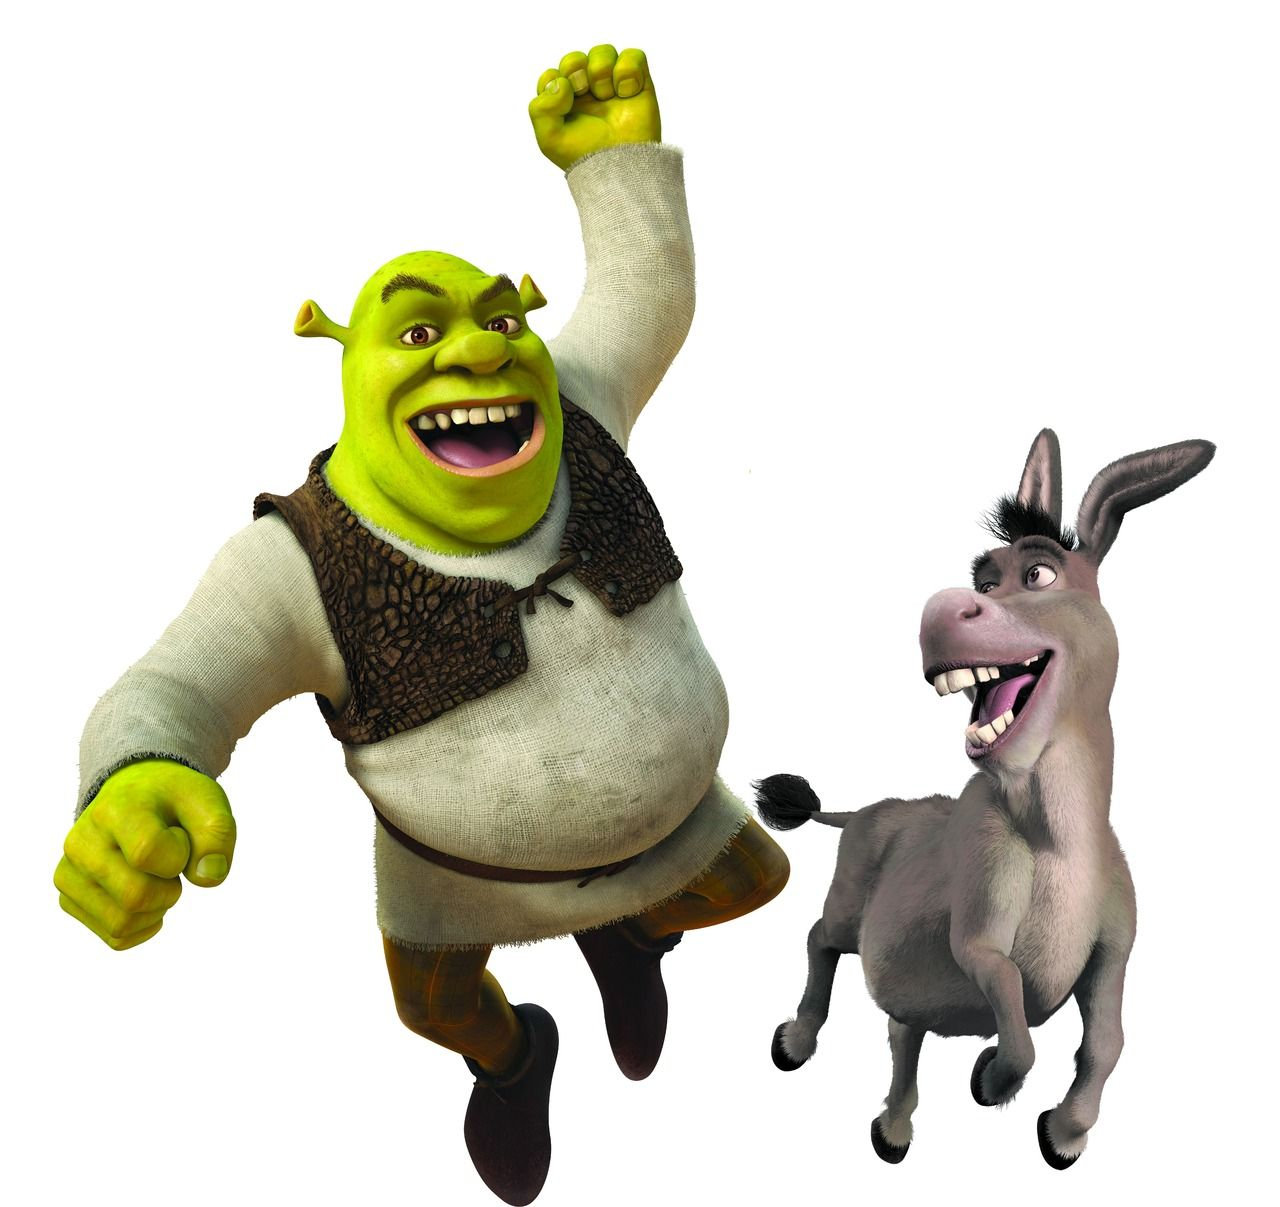 Shrek 2 Cartoon Characters : Shrek character promo animation pinterest